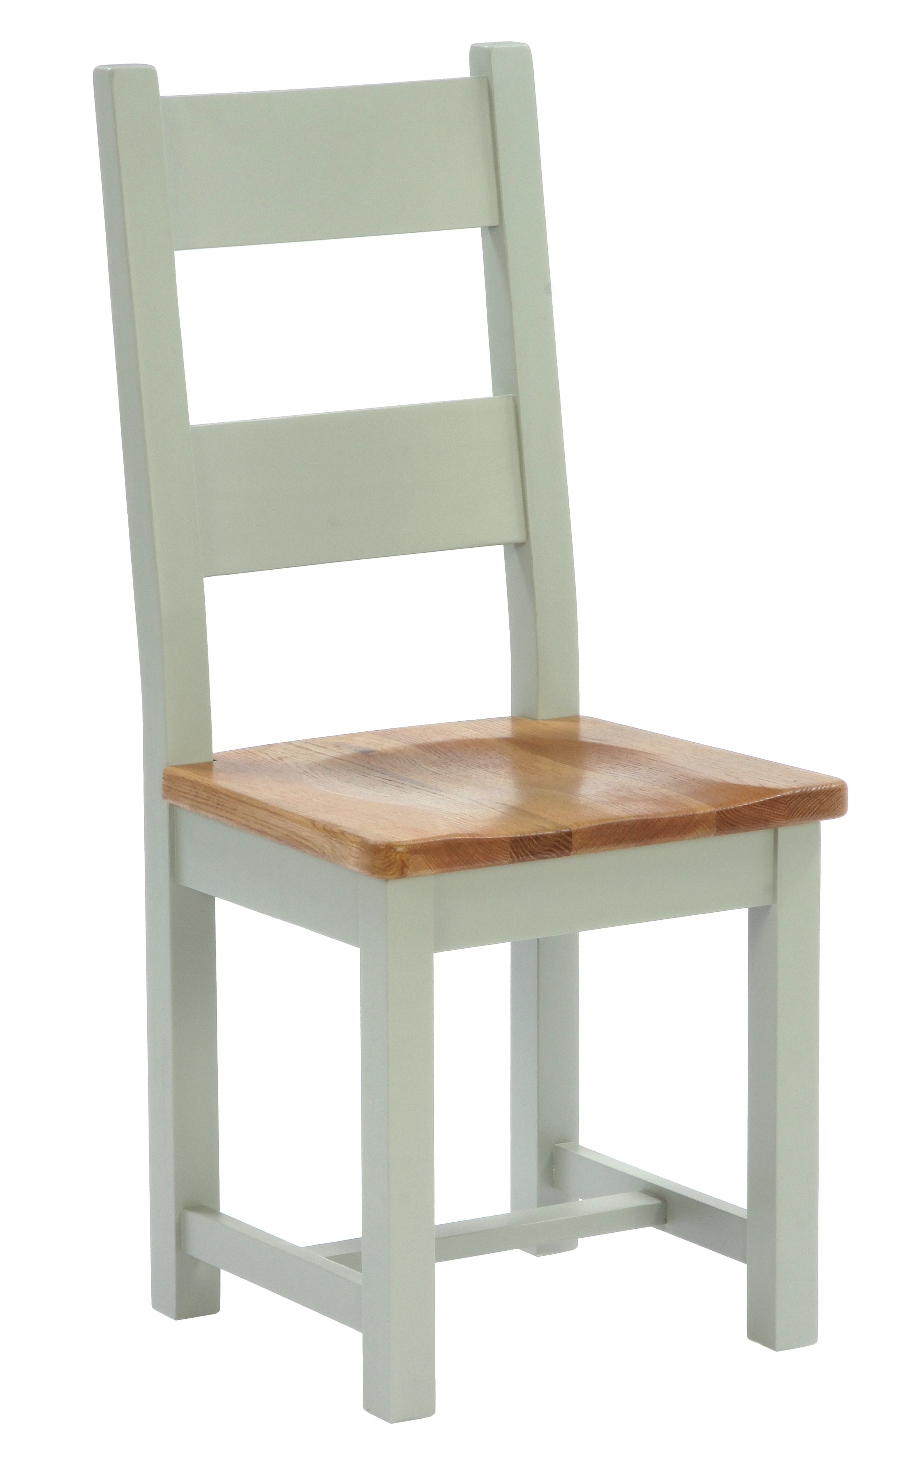 DINING CHAIR  w 47 x d 50 x h 108 cm  €160  Product Code: ANB004